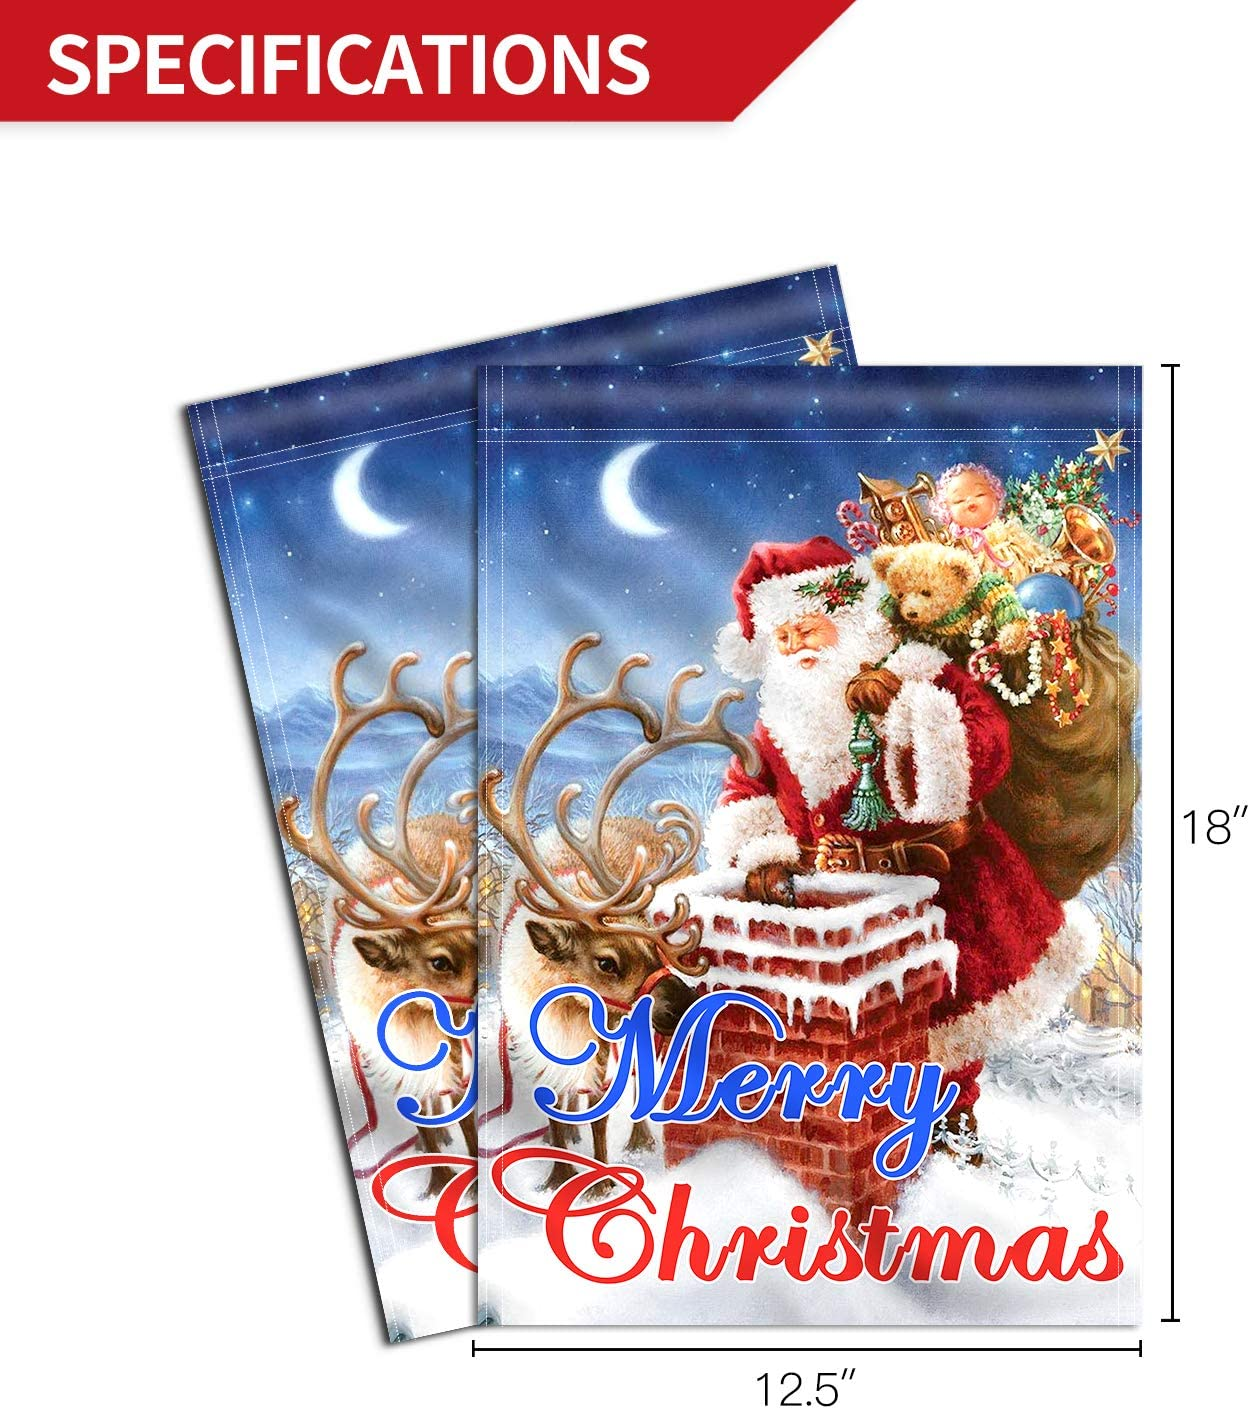 Amazon Com Anley Double Sided Premium Merry Christmas Garden Flag Santa Claus Winter Decorative Garden Flags Weather Resistant Double Stitched 18 X 12 5 Inch Garden Outdoor